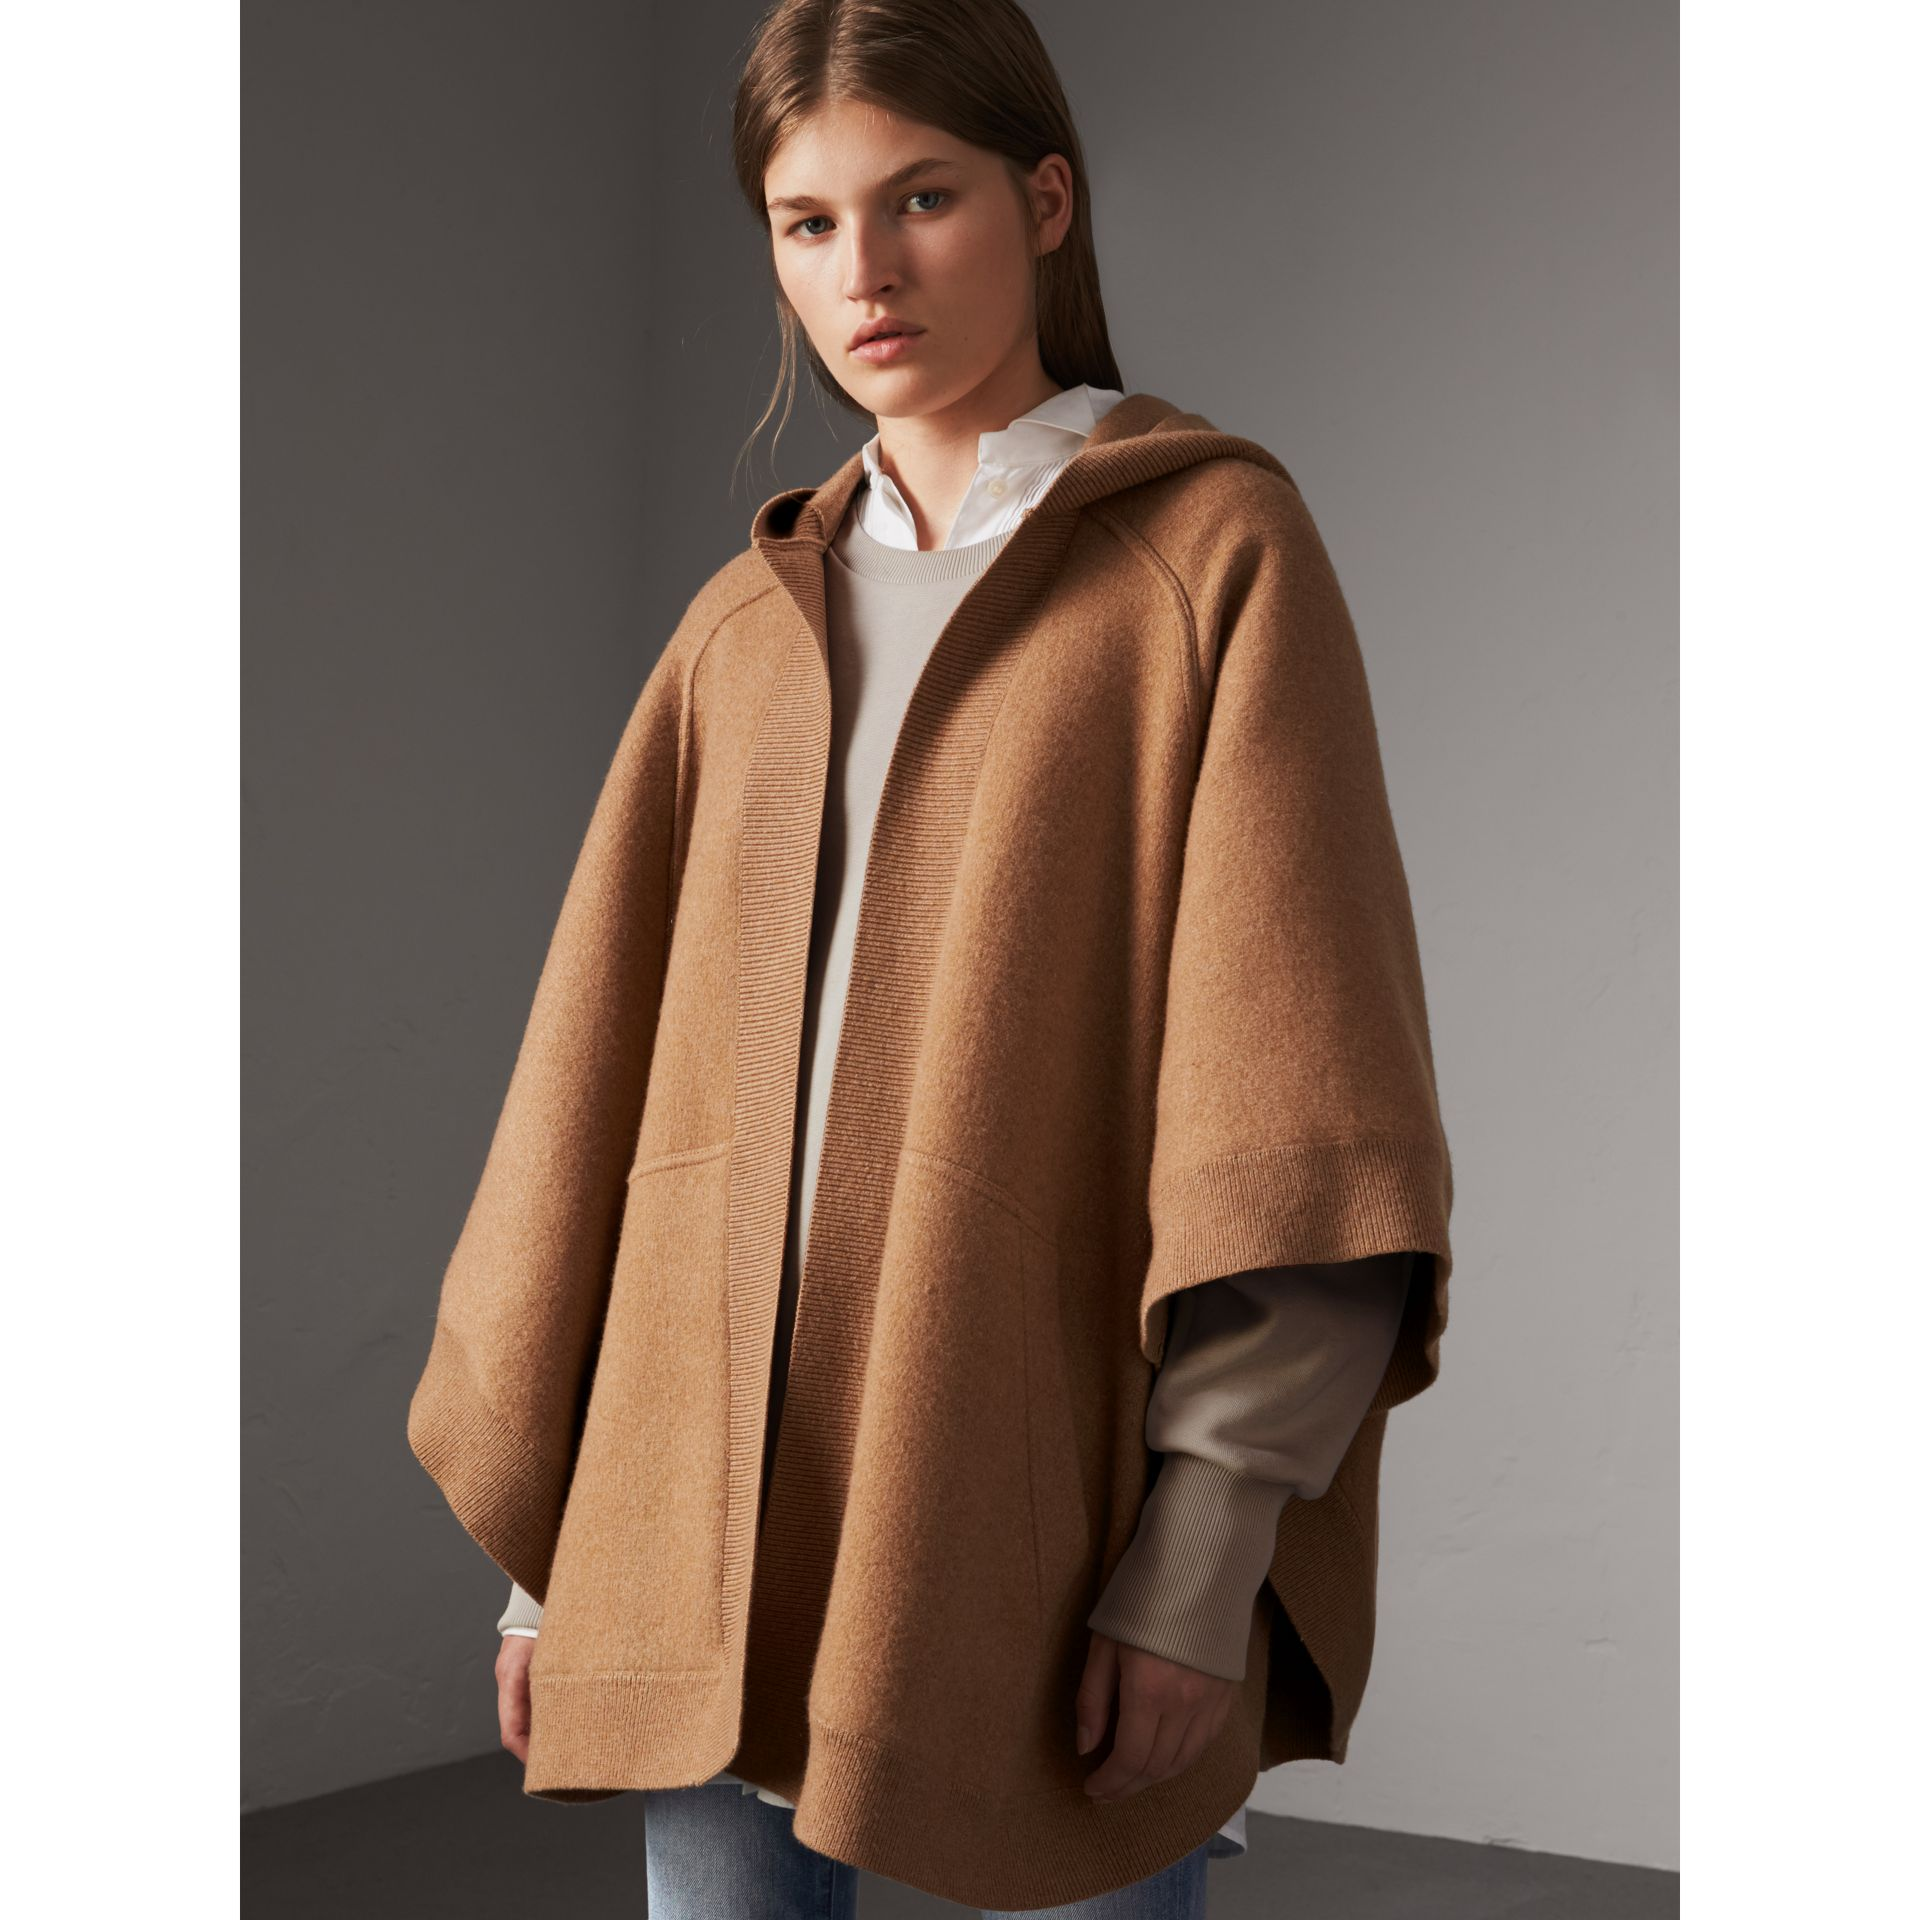 Wool Cashmere Blend Hooded Poncho in Camel - Women | Burberry Singapore - gallery image 5